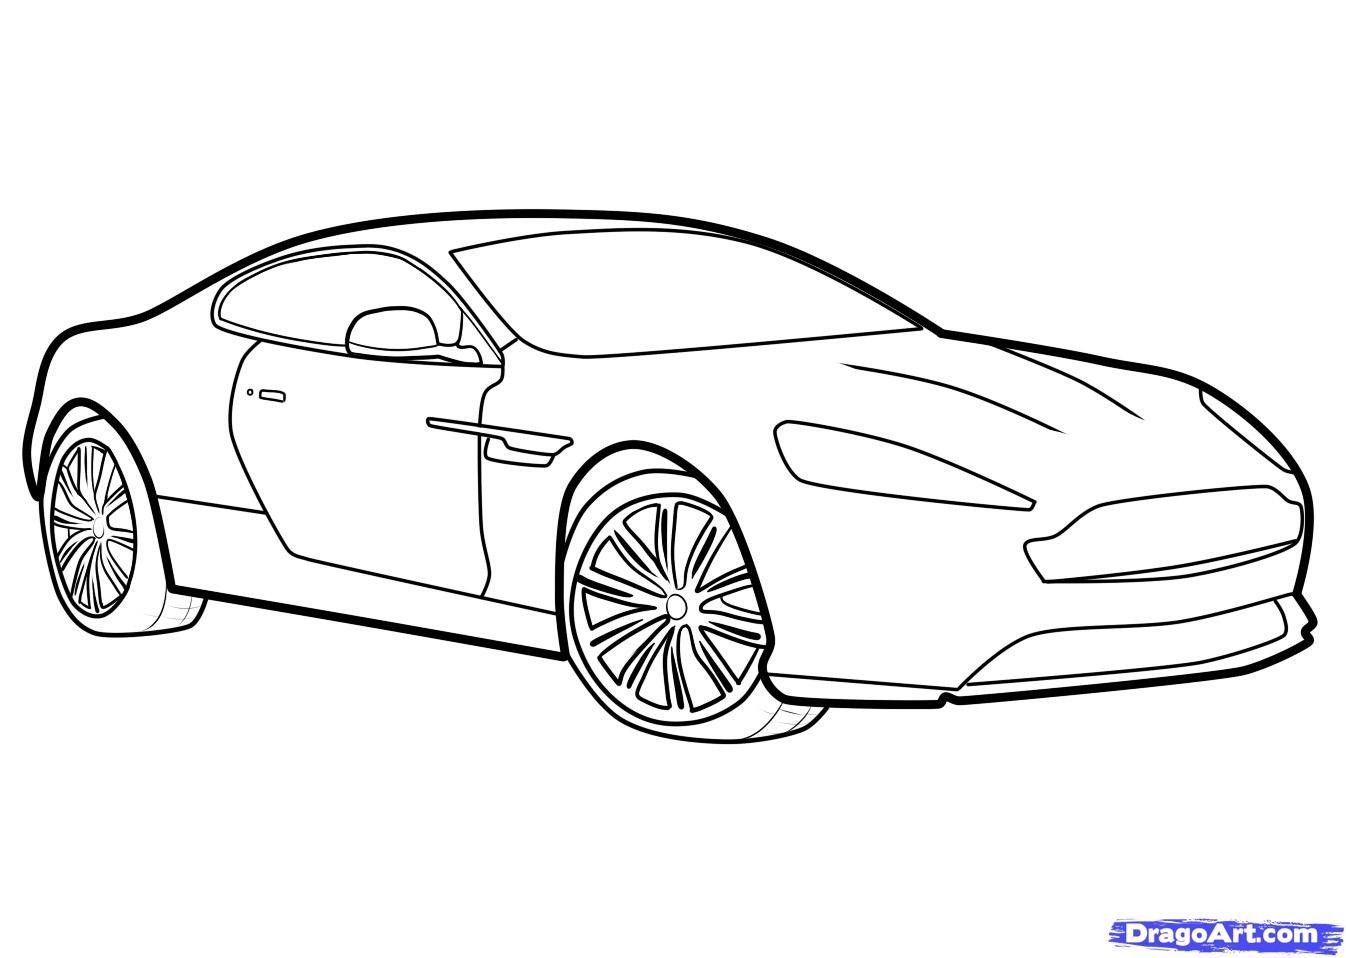 3D Drawings Of Car Step By Step Black And White